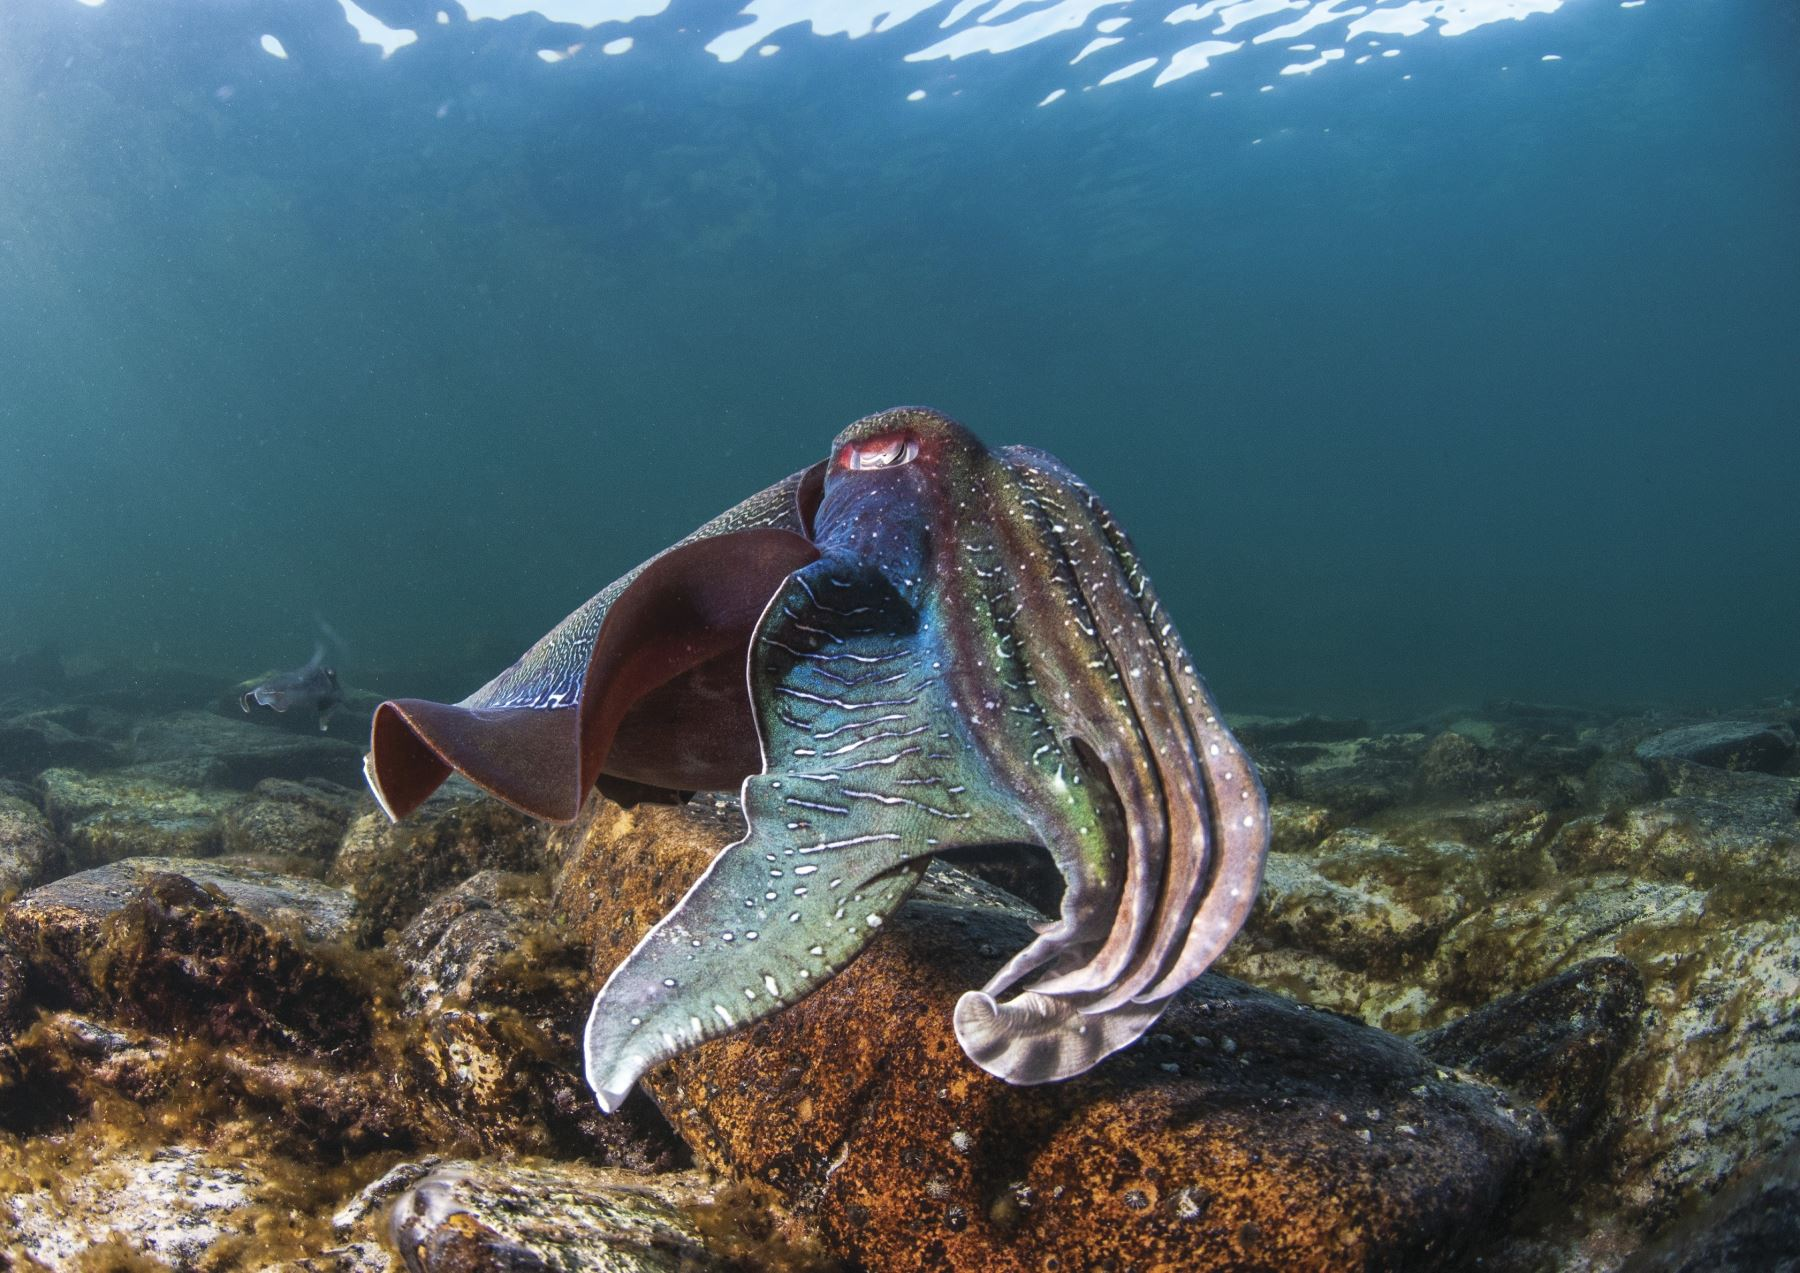 Cuttlefish at Stony Point, Whyalla. Photo: Carl Charter.